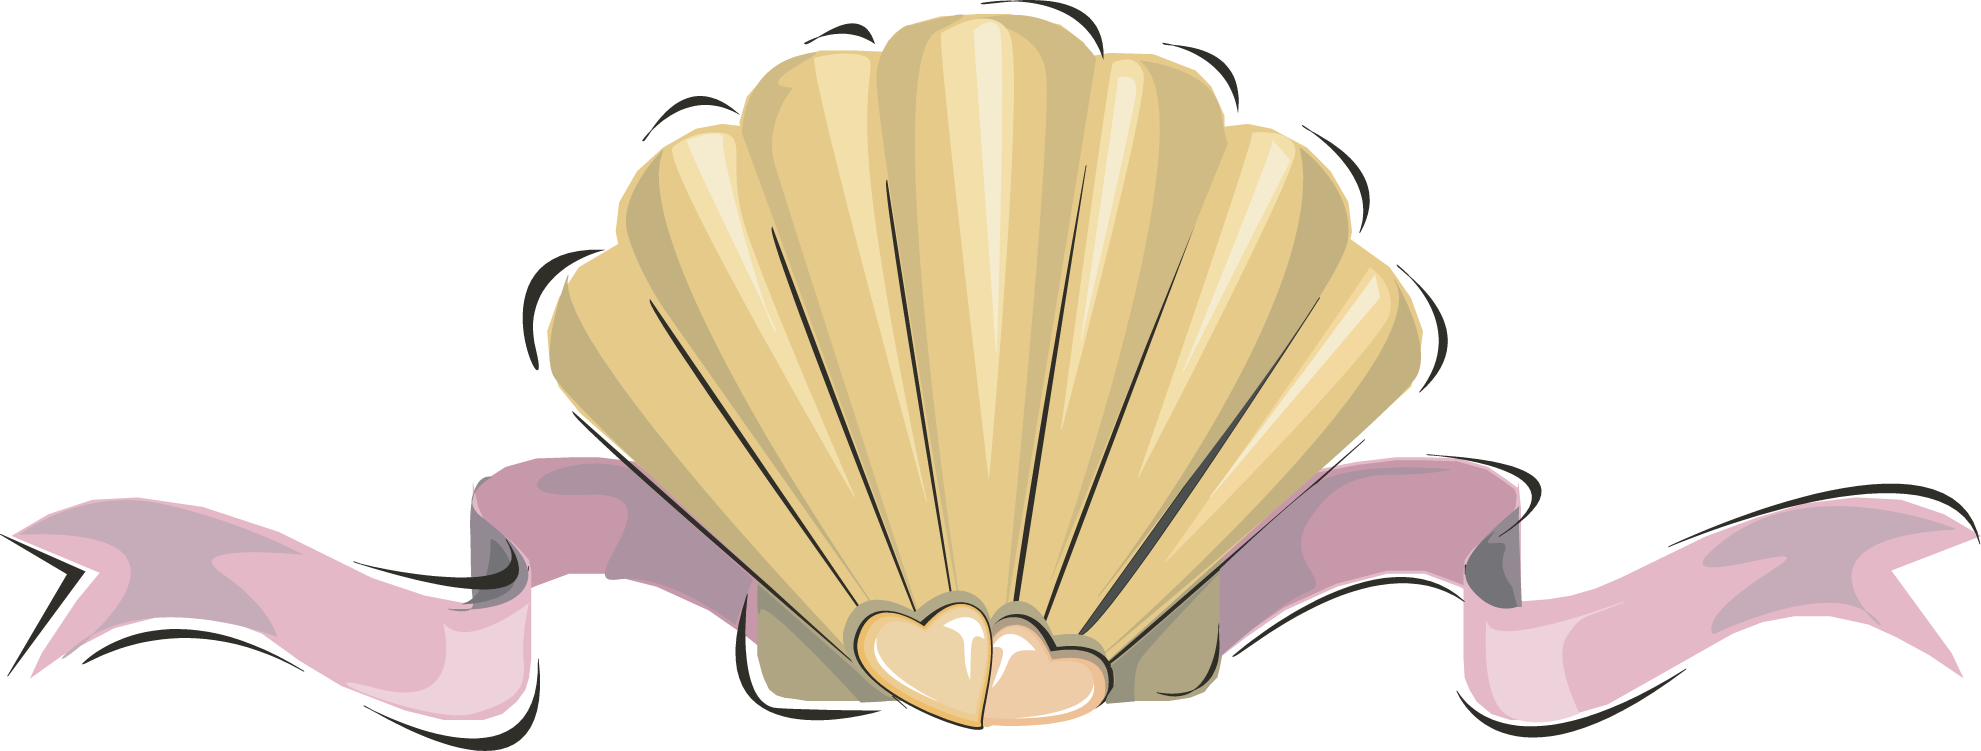 clipart black and white library Clam clipart clamshell. Oyster seashell clip art.